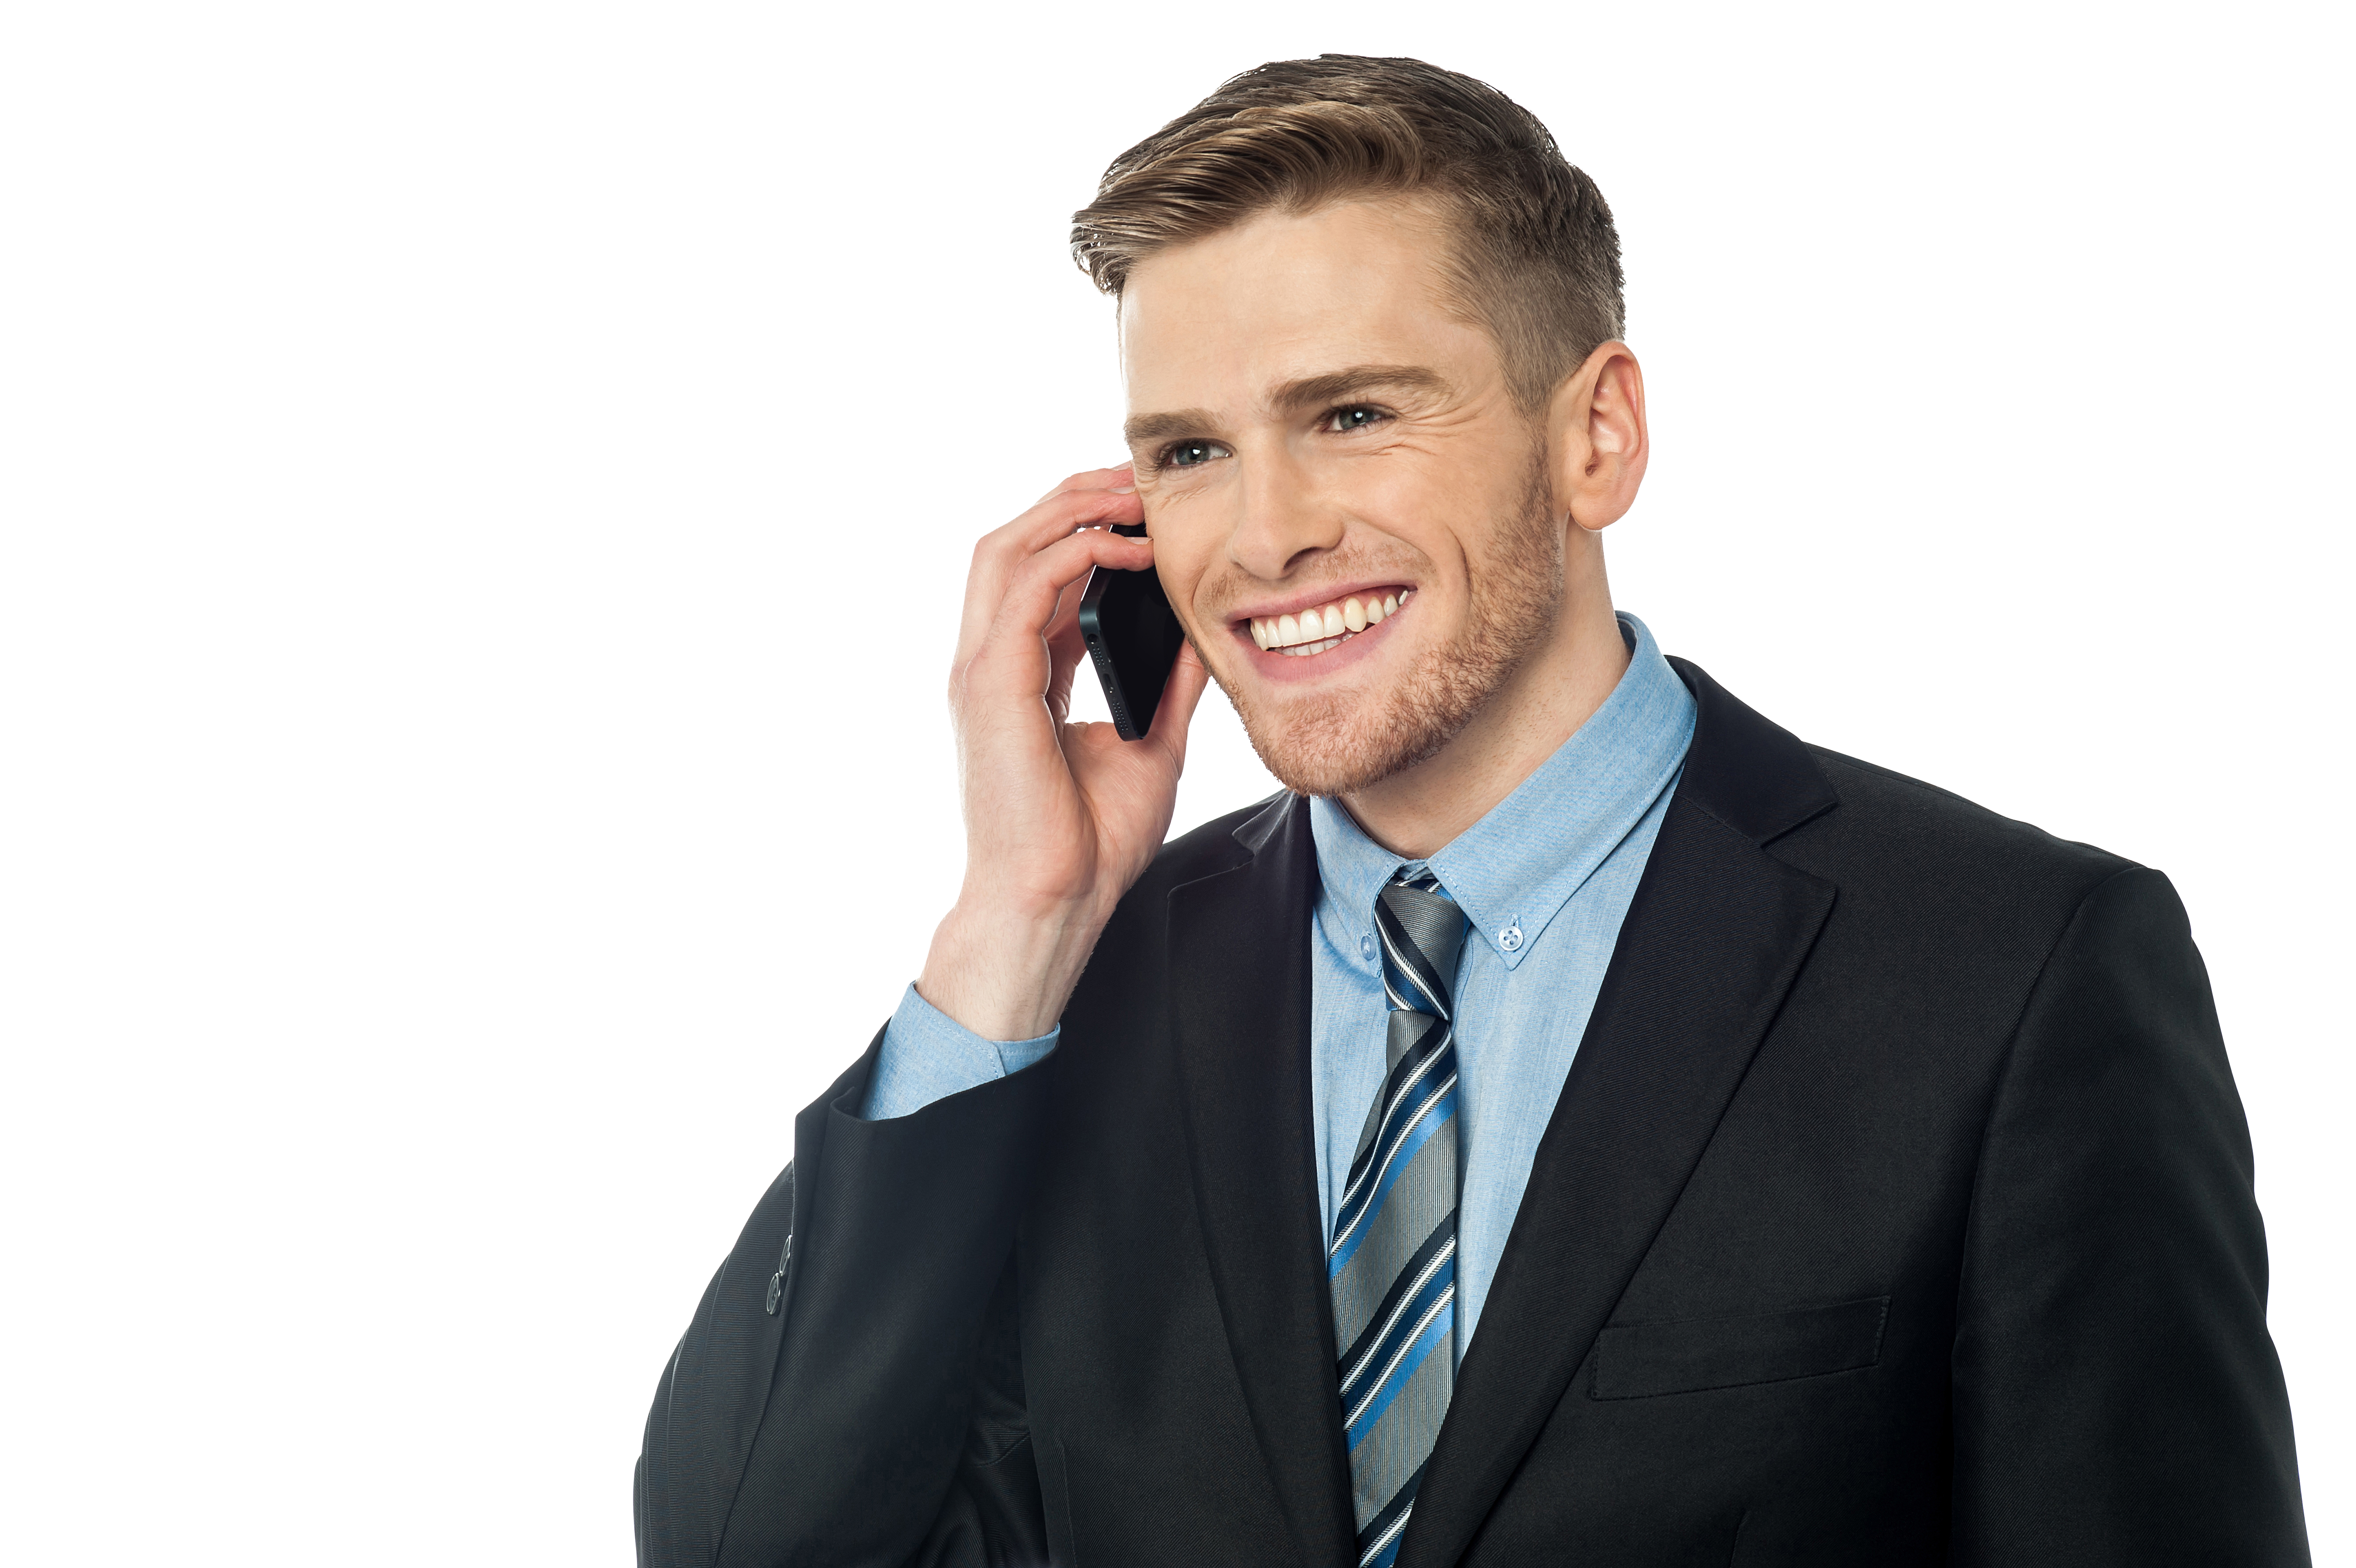 Businessperson Png Image Business Person Business Women Business Man